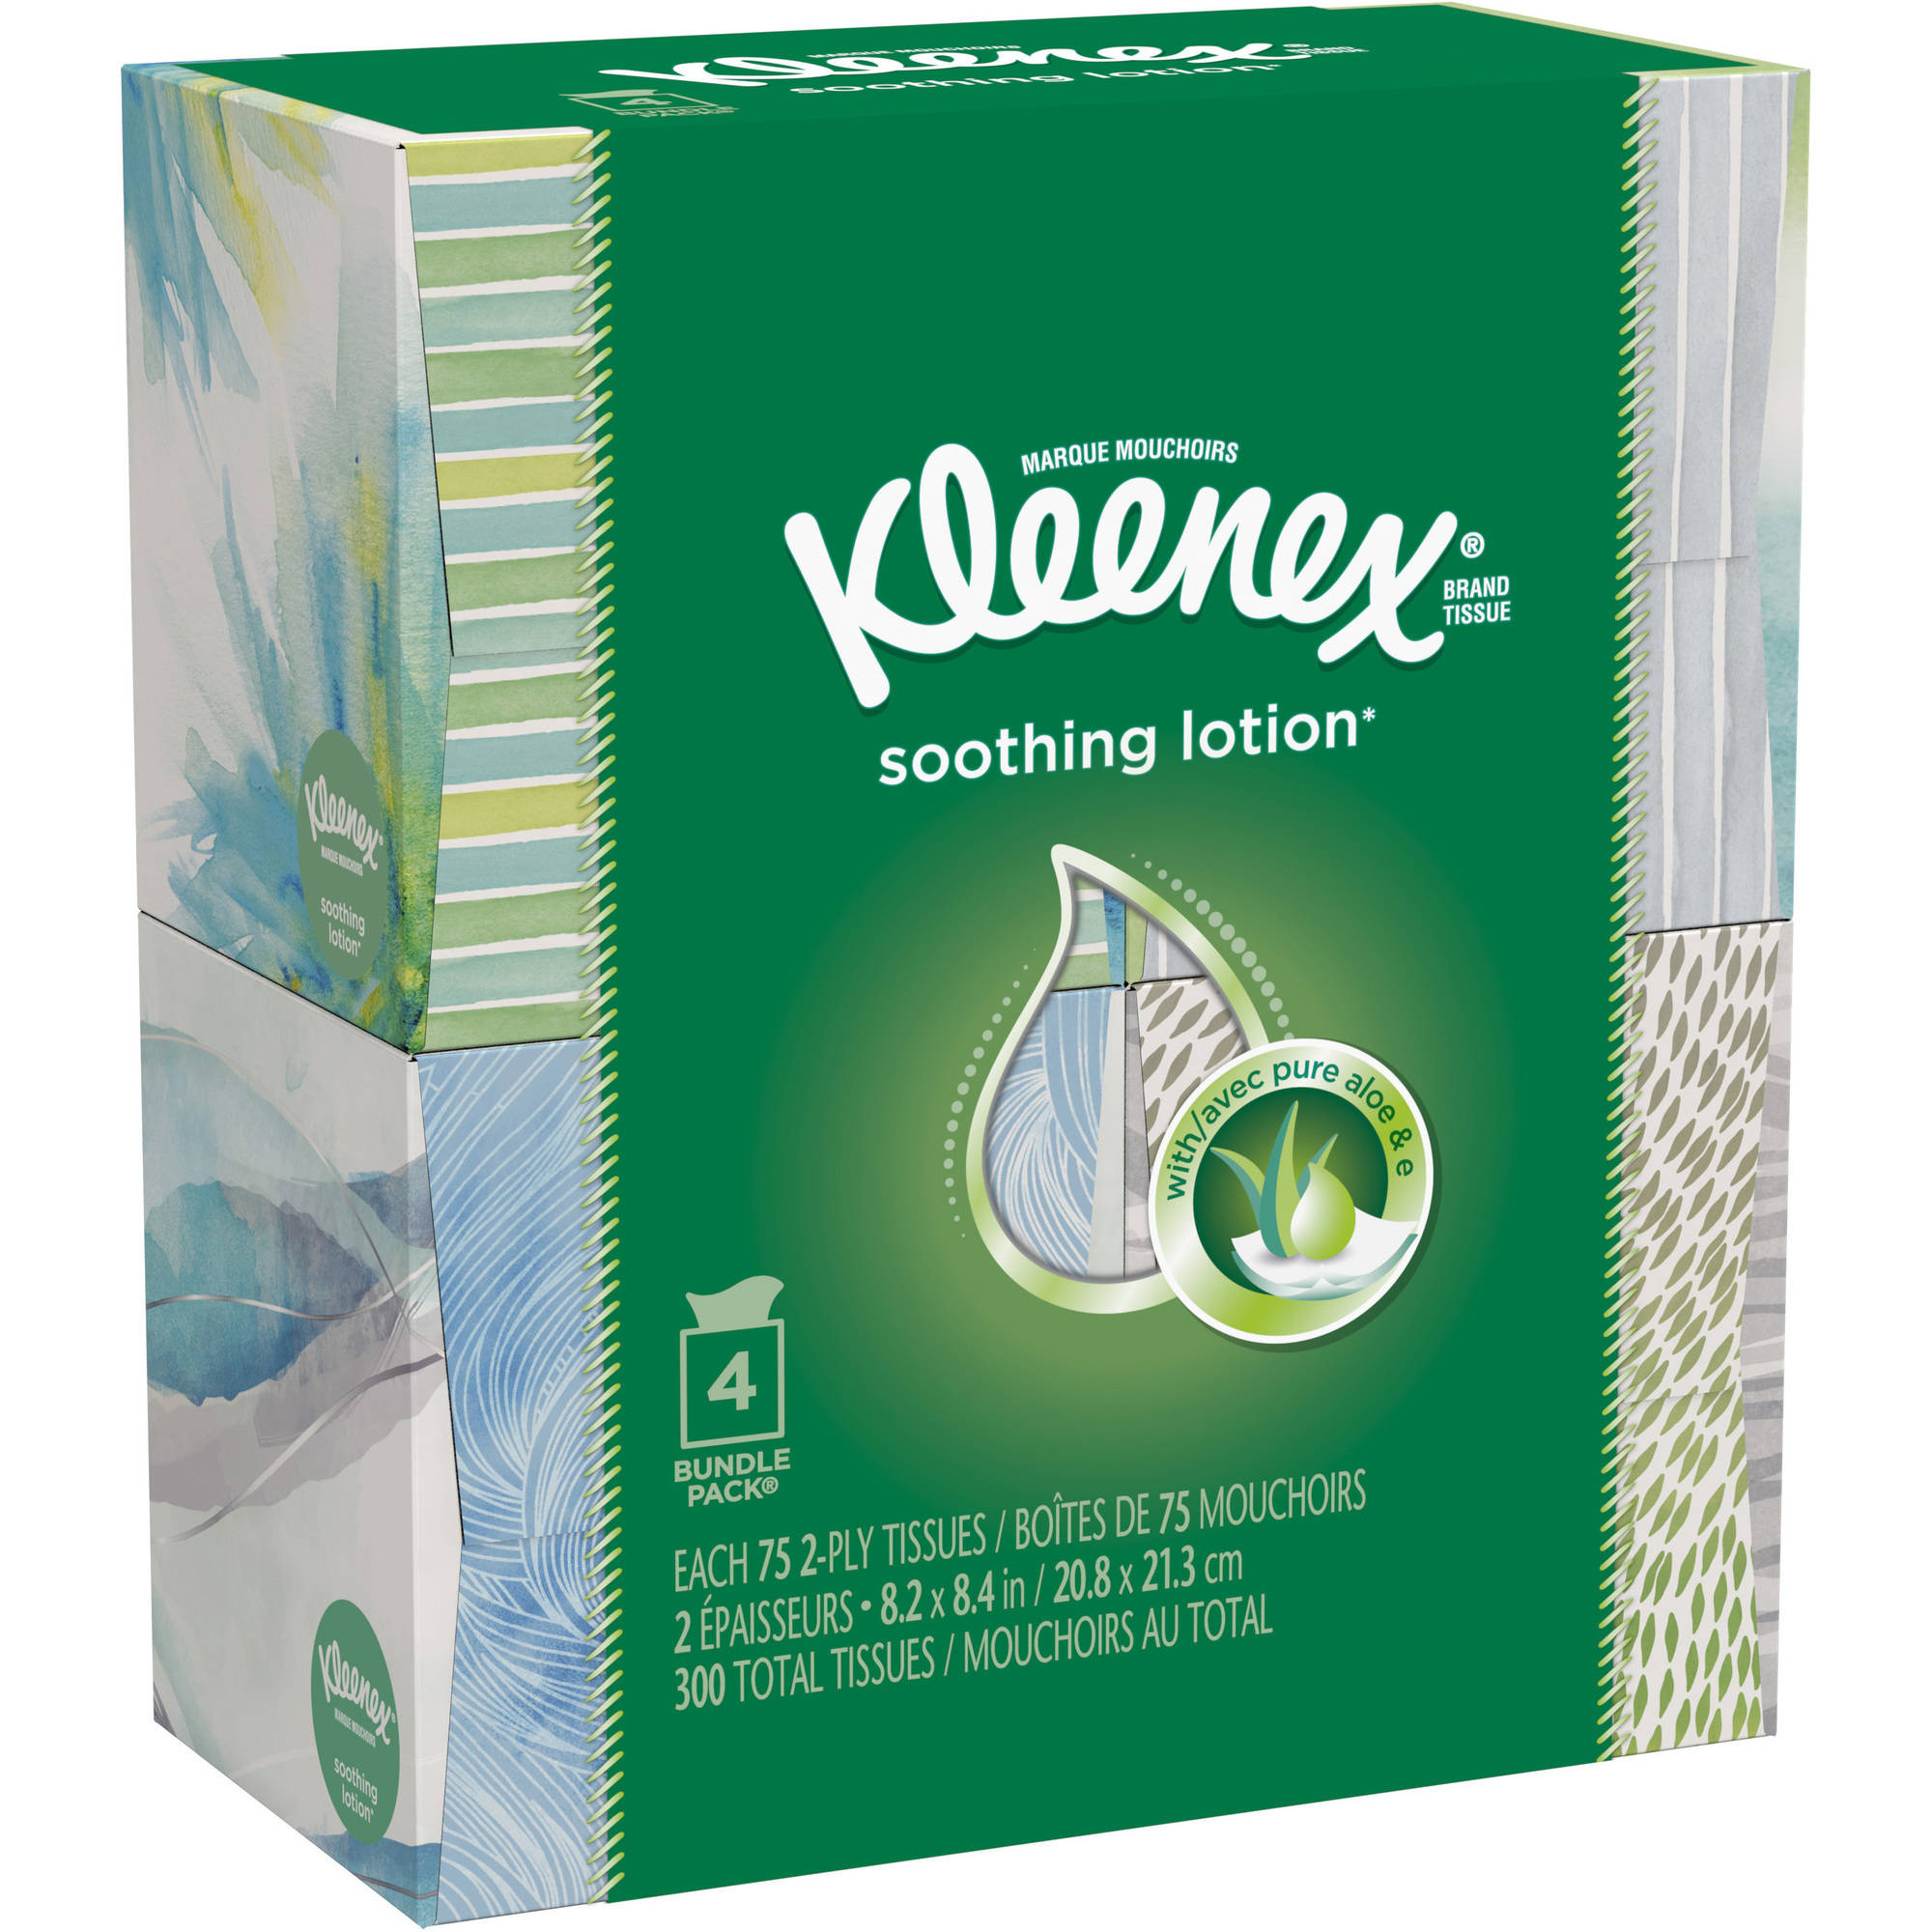 Kleenex Facial Tissues, Lotion, 75 Sheets, Pack of 4 (Designs May Vary)